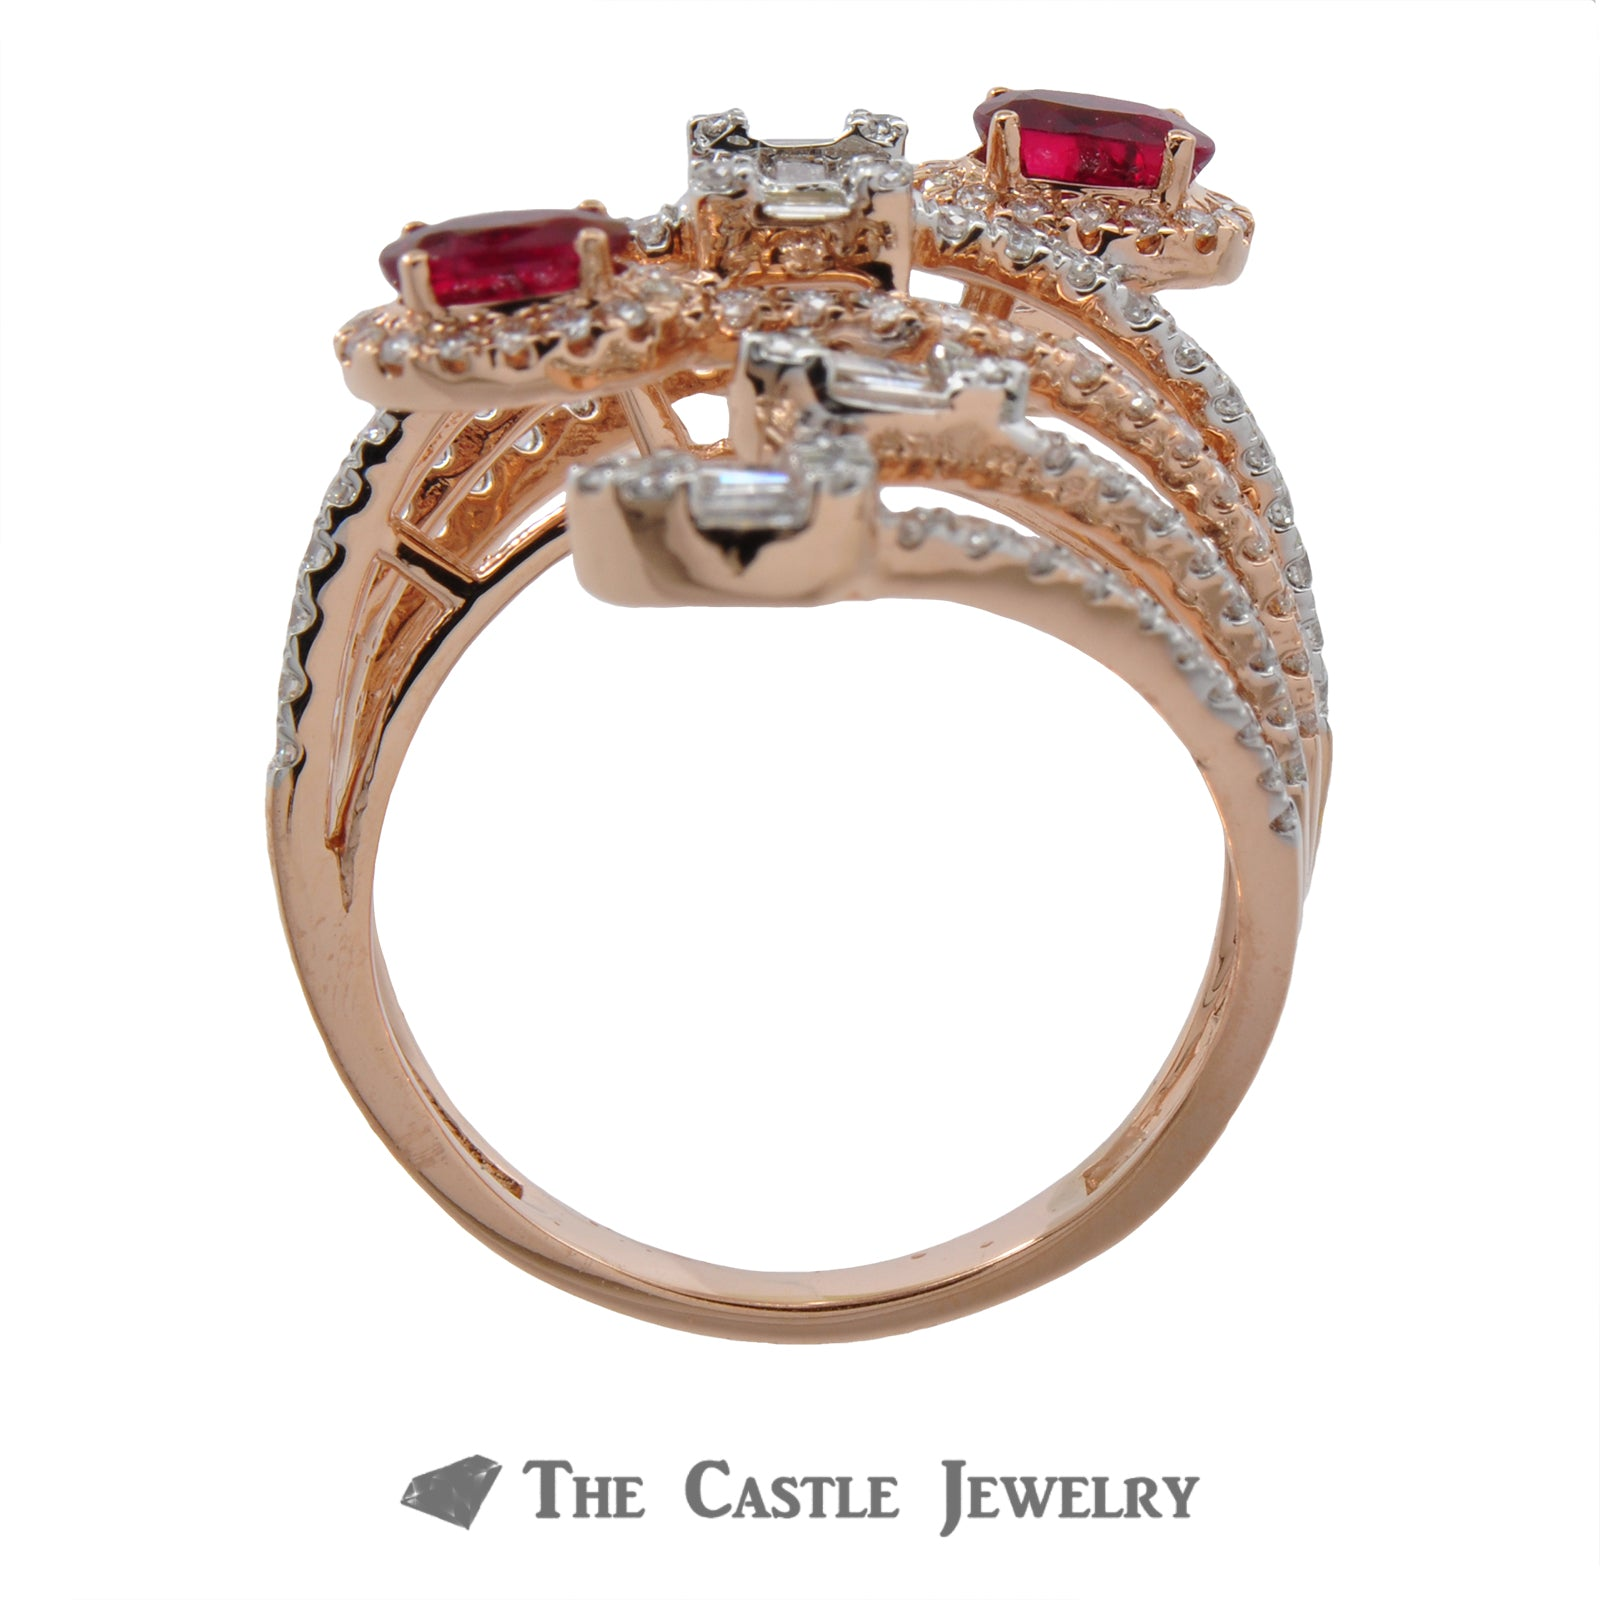 Diamond and Ruby Statement Ring in 14k Rose Gold-1